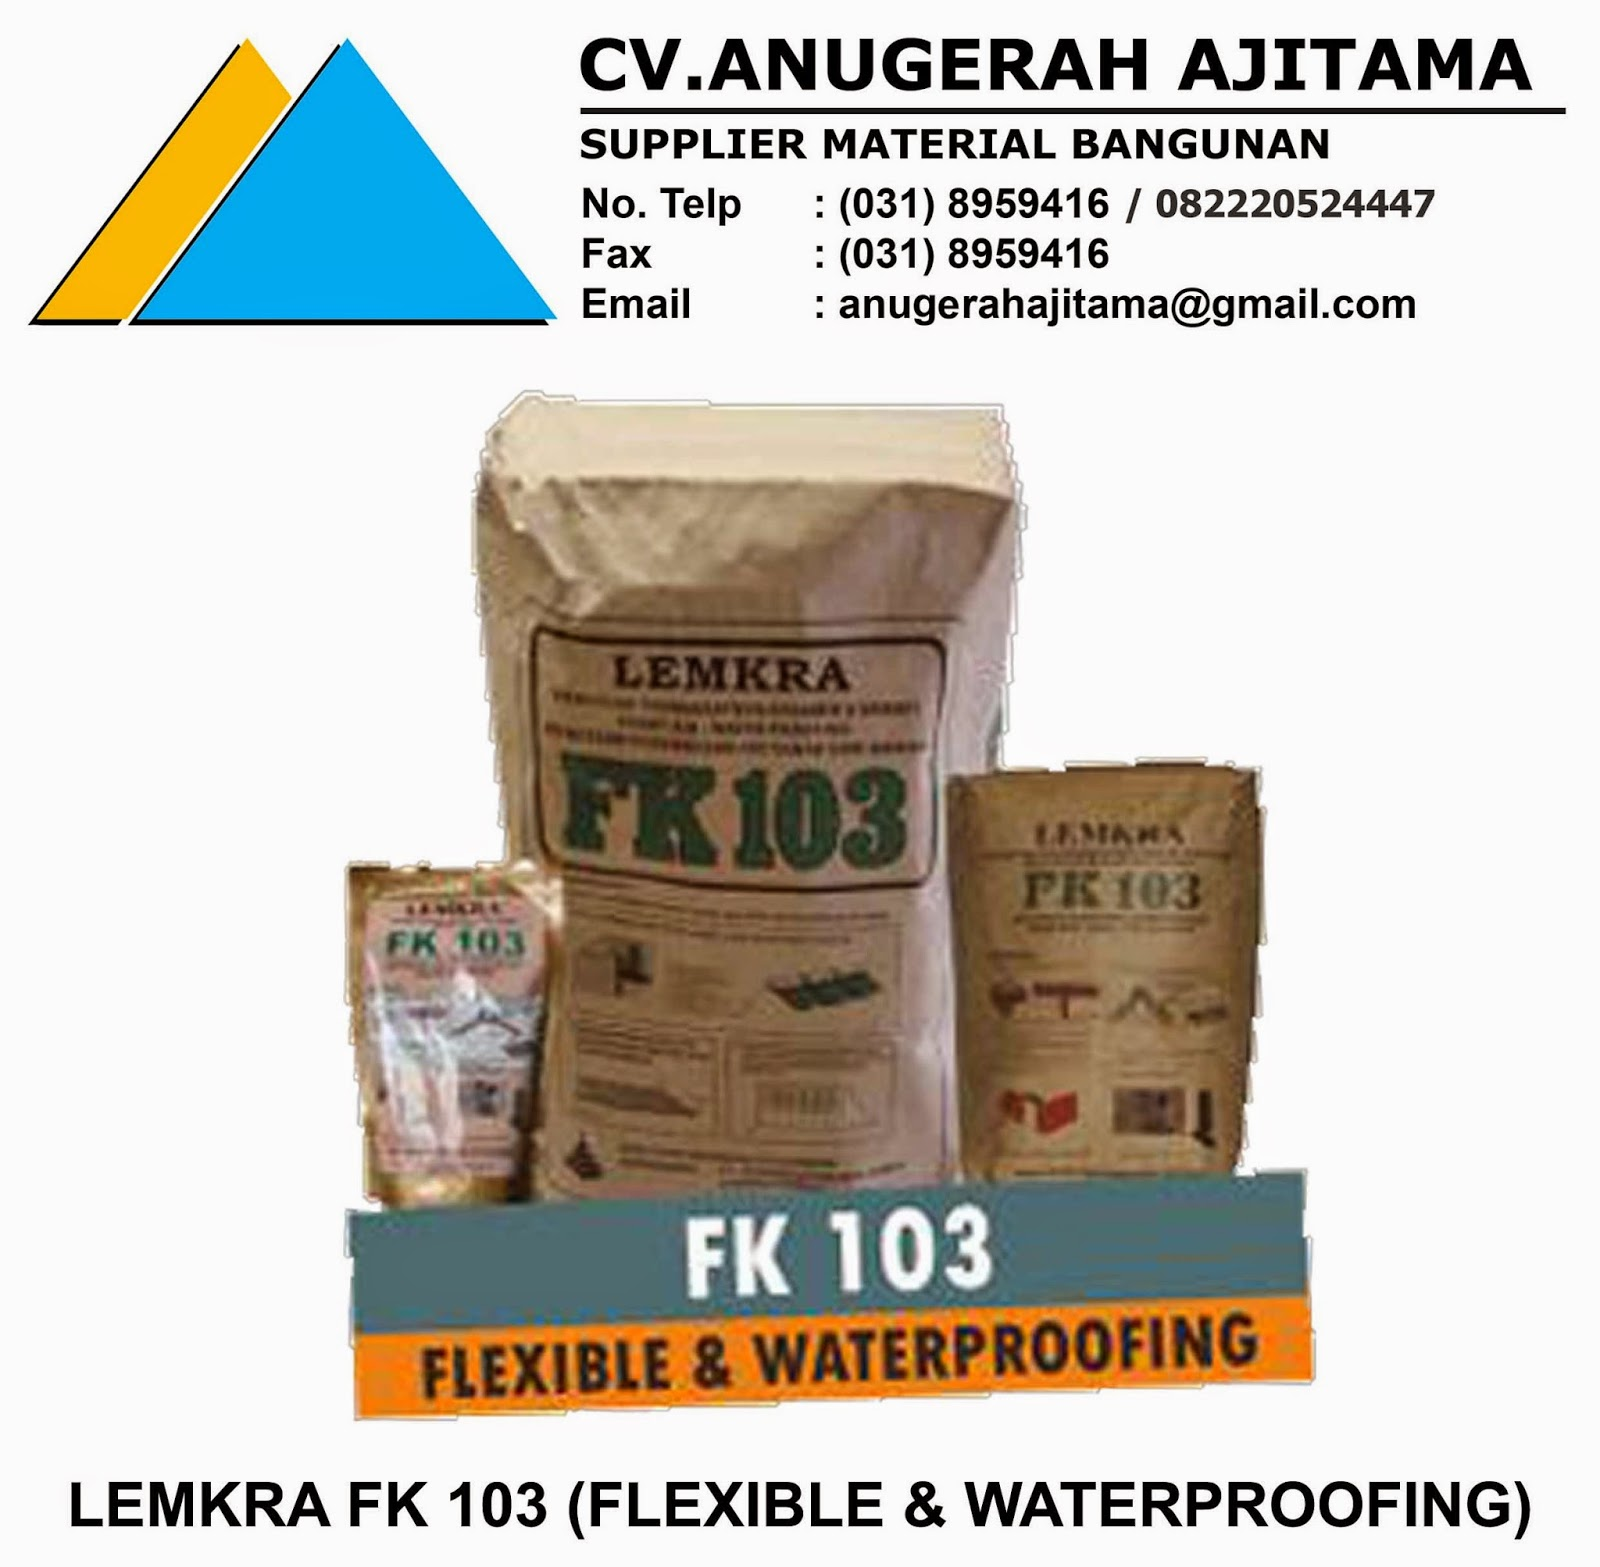 LEMKRA FK 103 (FLEXIBLE & WATERPROOFING)